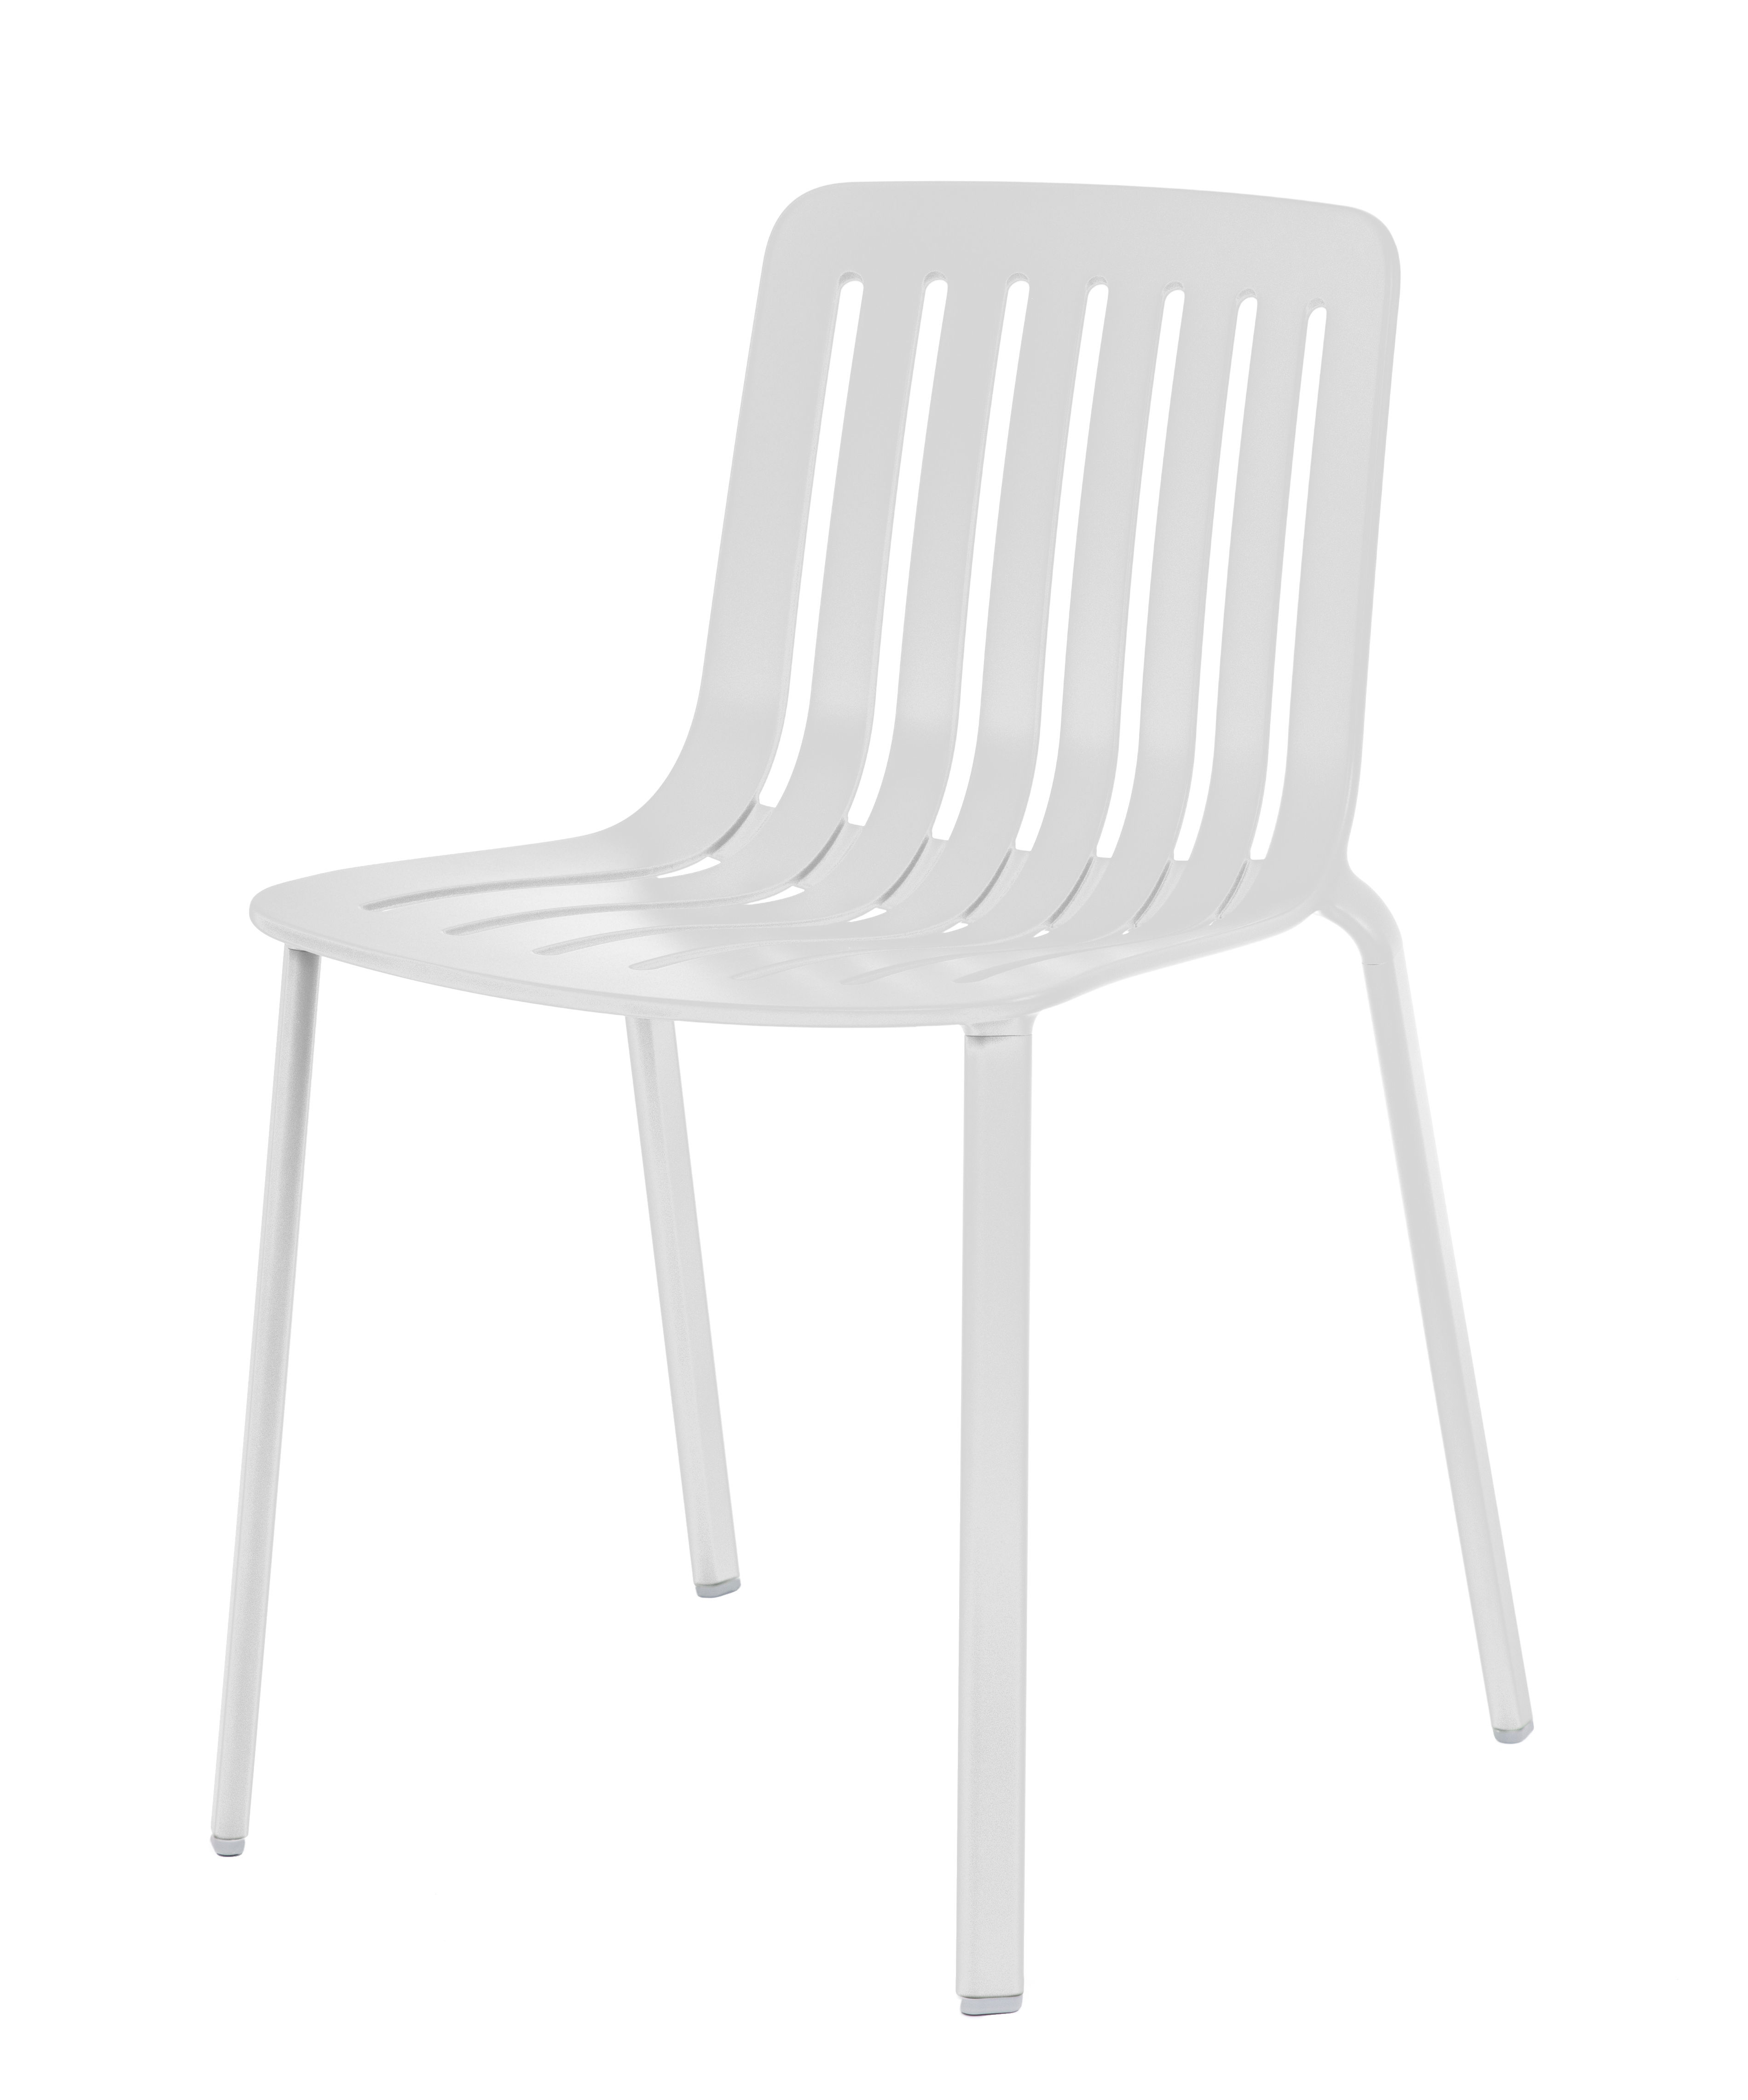 Furniture - Chairs - Plato Stacking chair - / Aluminium by Magis - White - Painted cast aluminium, Varnished injected aluminium